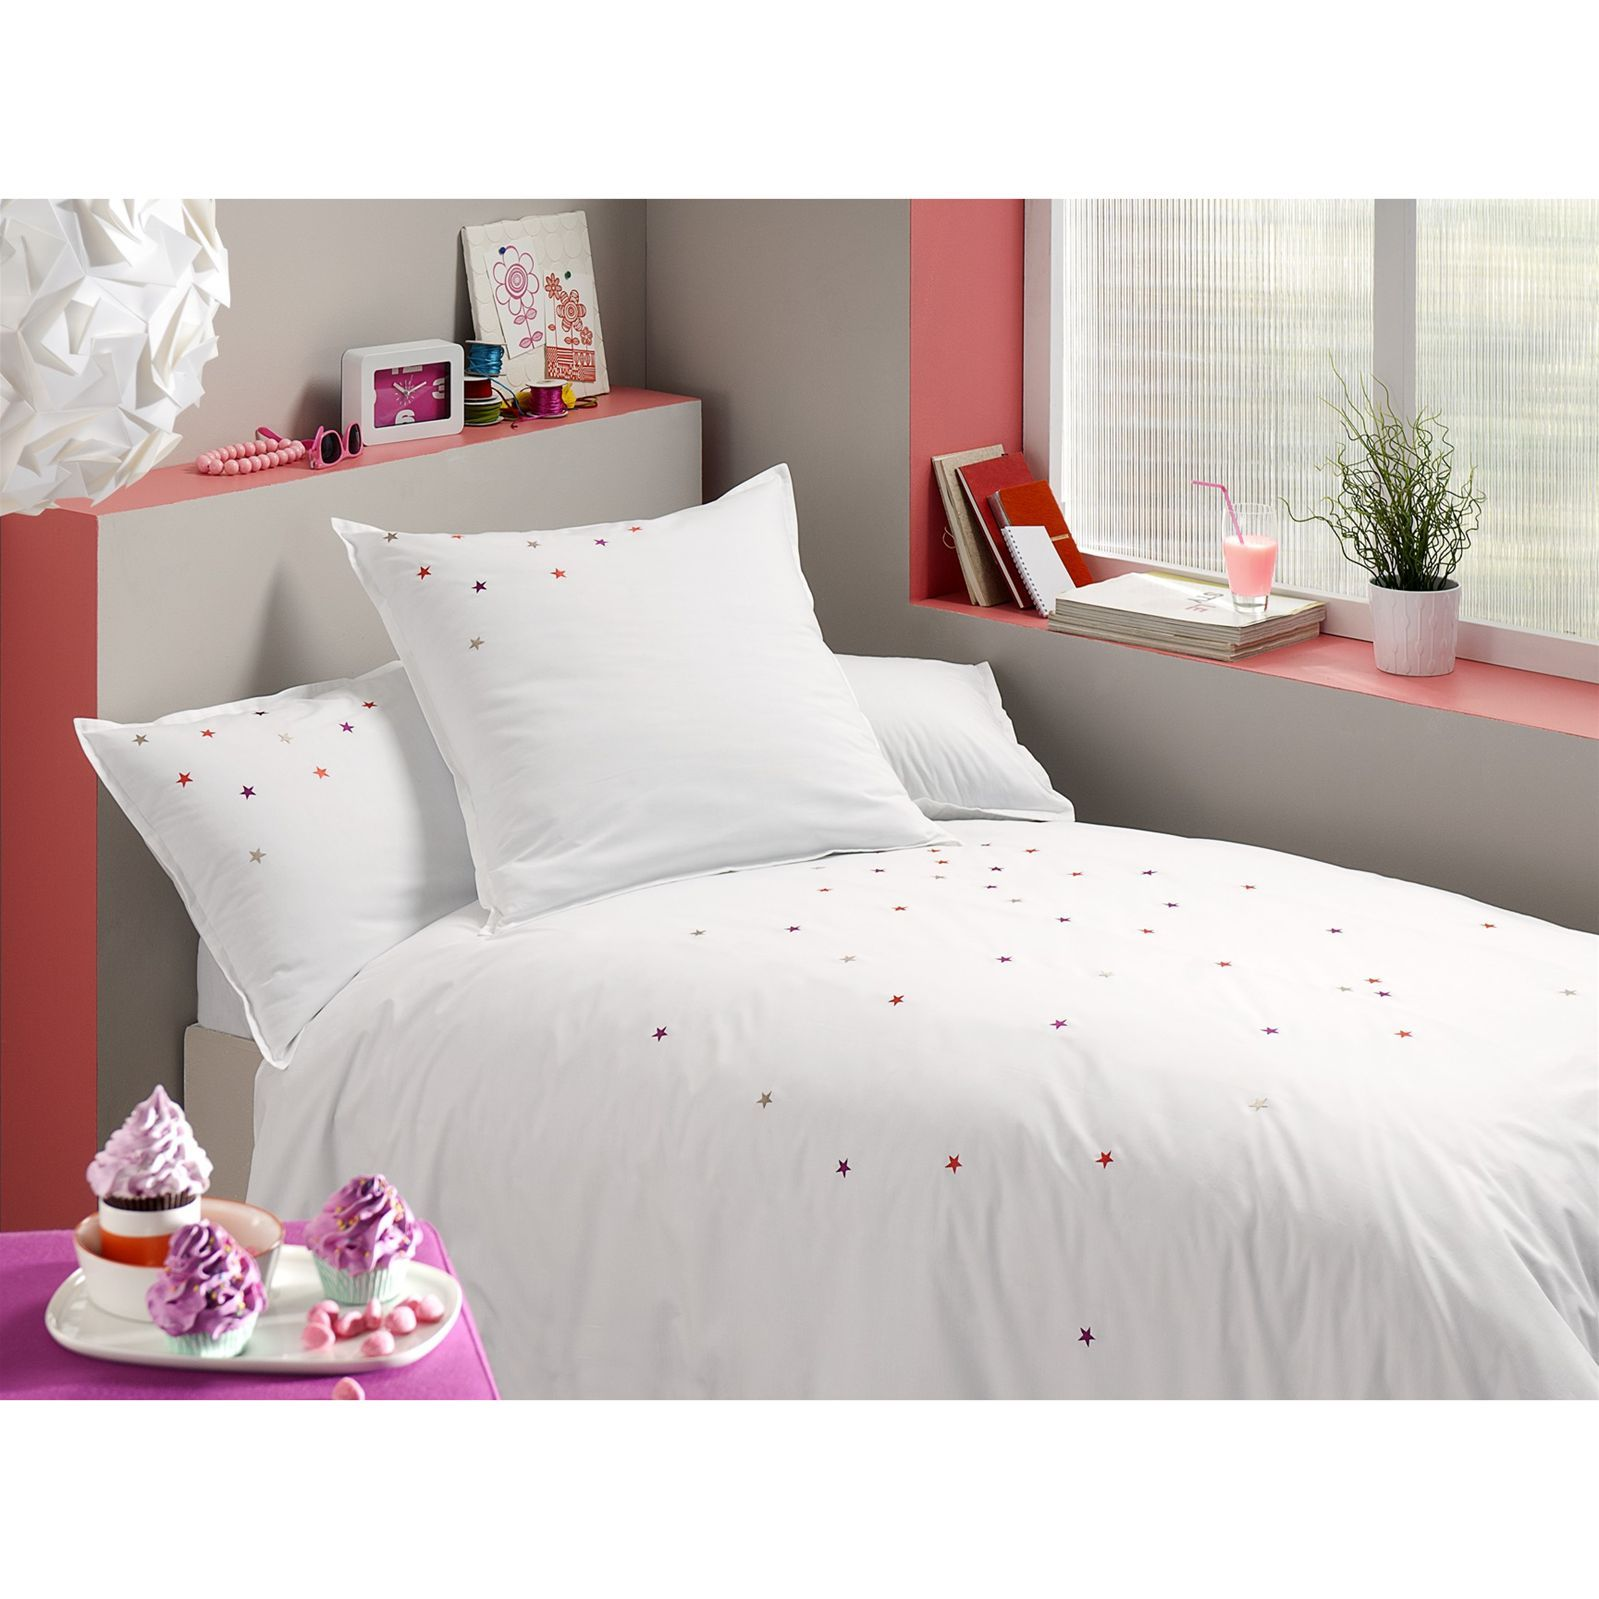 blanc cerise songe d 39 une nuit d 39 t housse de couette blanc brandalley. Black Bedroom Furniture Sets. Home Design Ideas